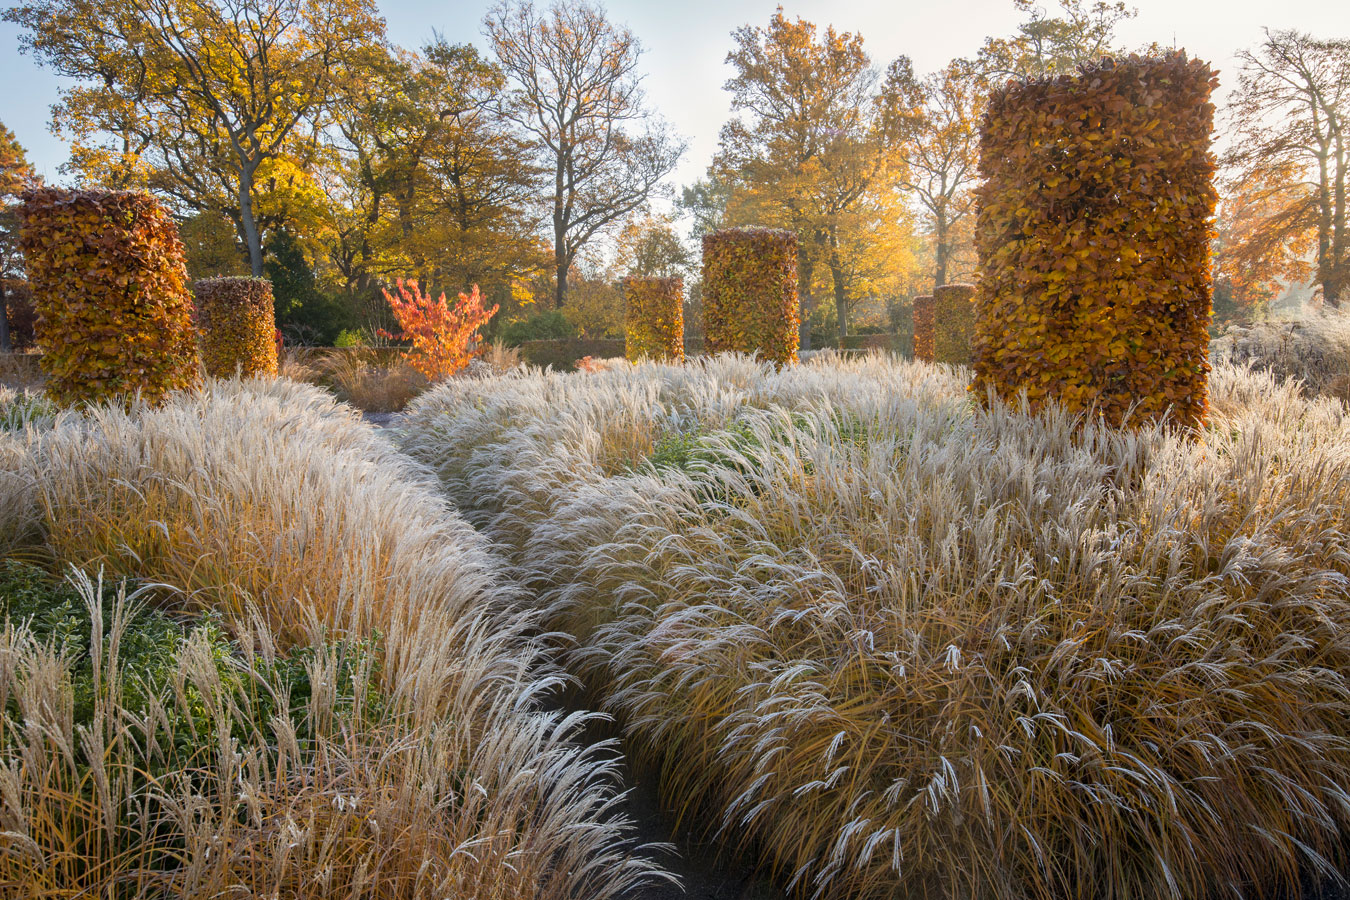 The Soft Hues Of Autumn At RHS Garden Wisley, © Marianne Majerus, Winner Celebrating Gardens Category, RHS Photographic Competition